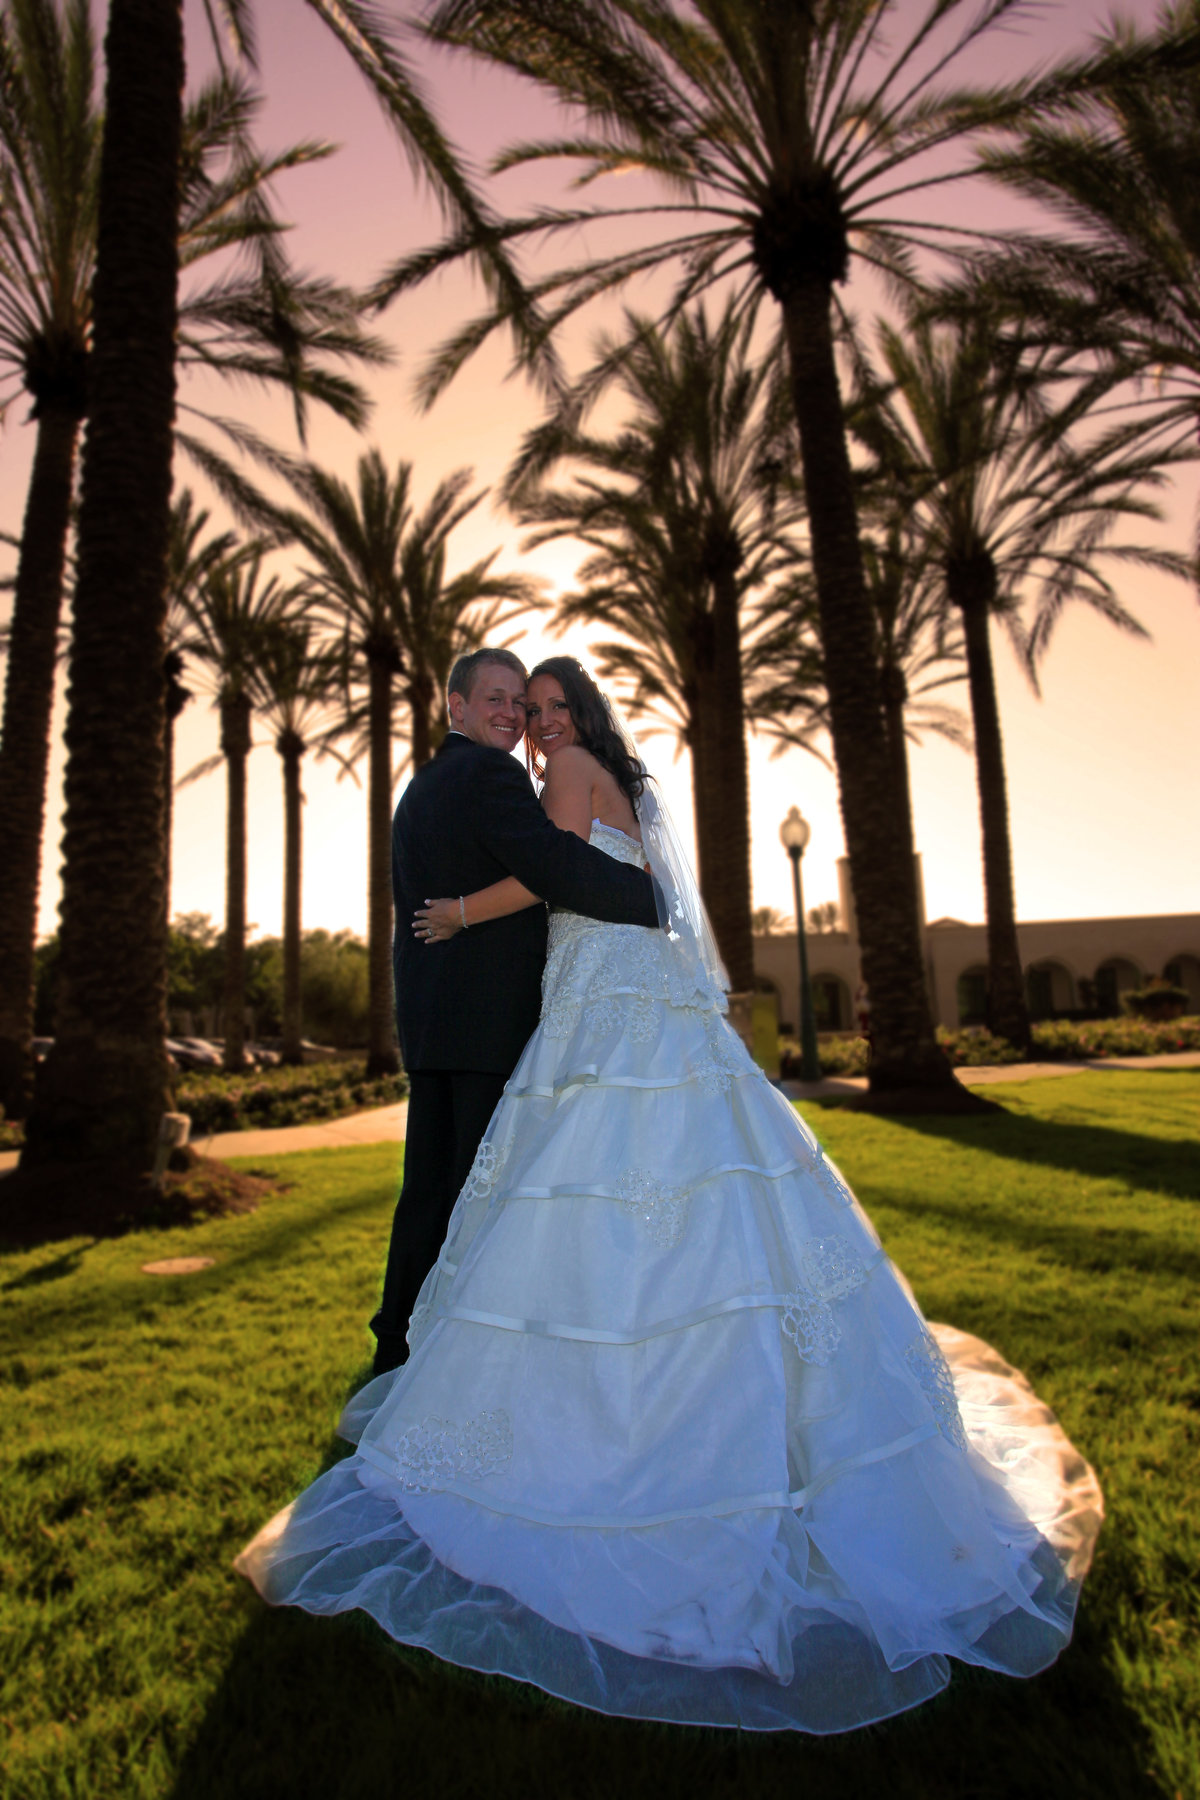 Kassel Photography offers 16 years experience in wedding and family photography.